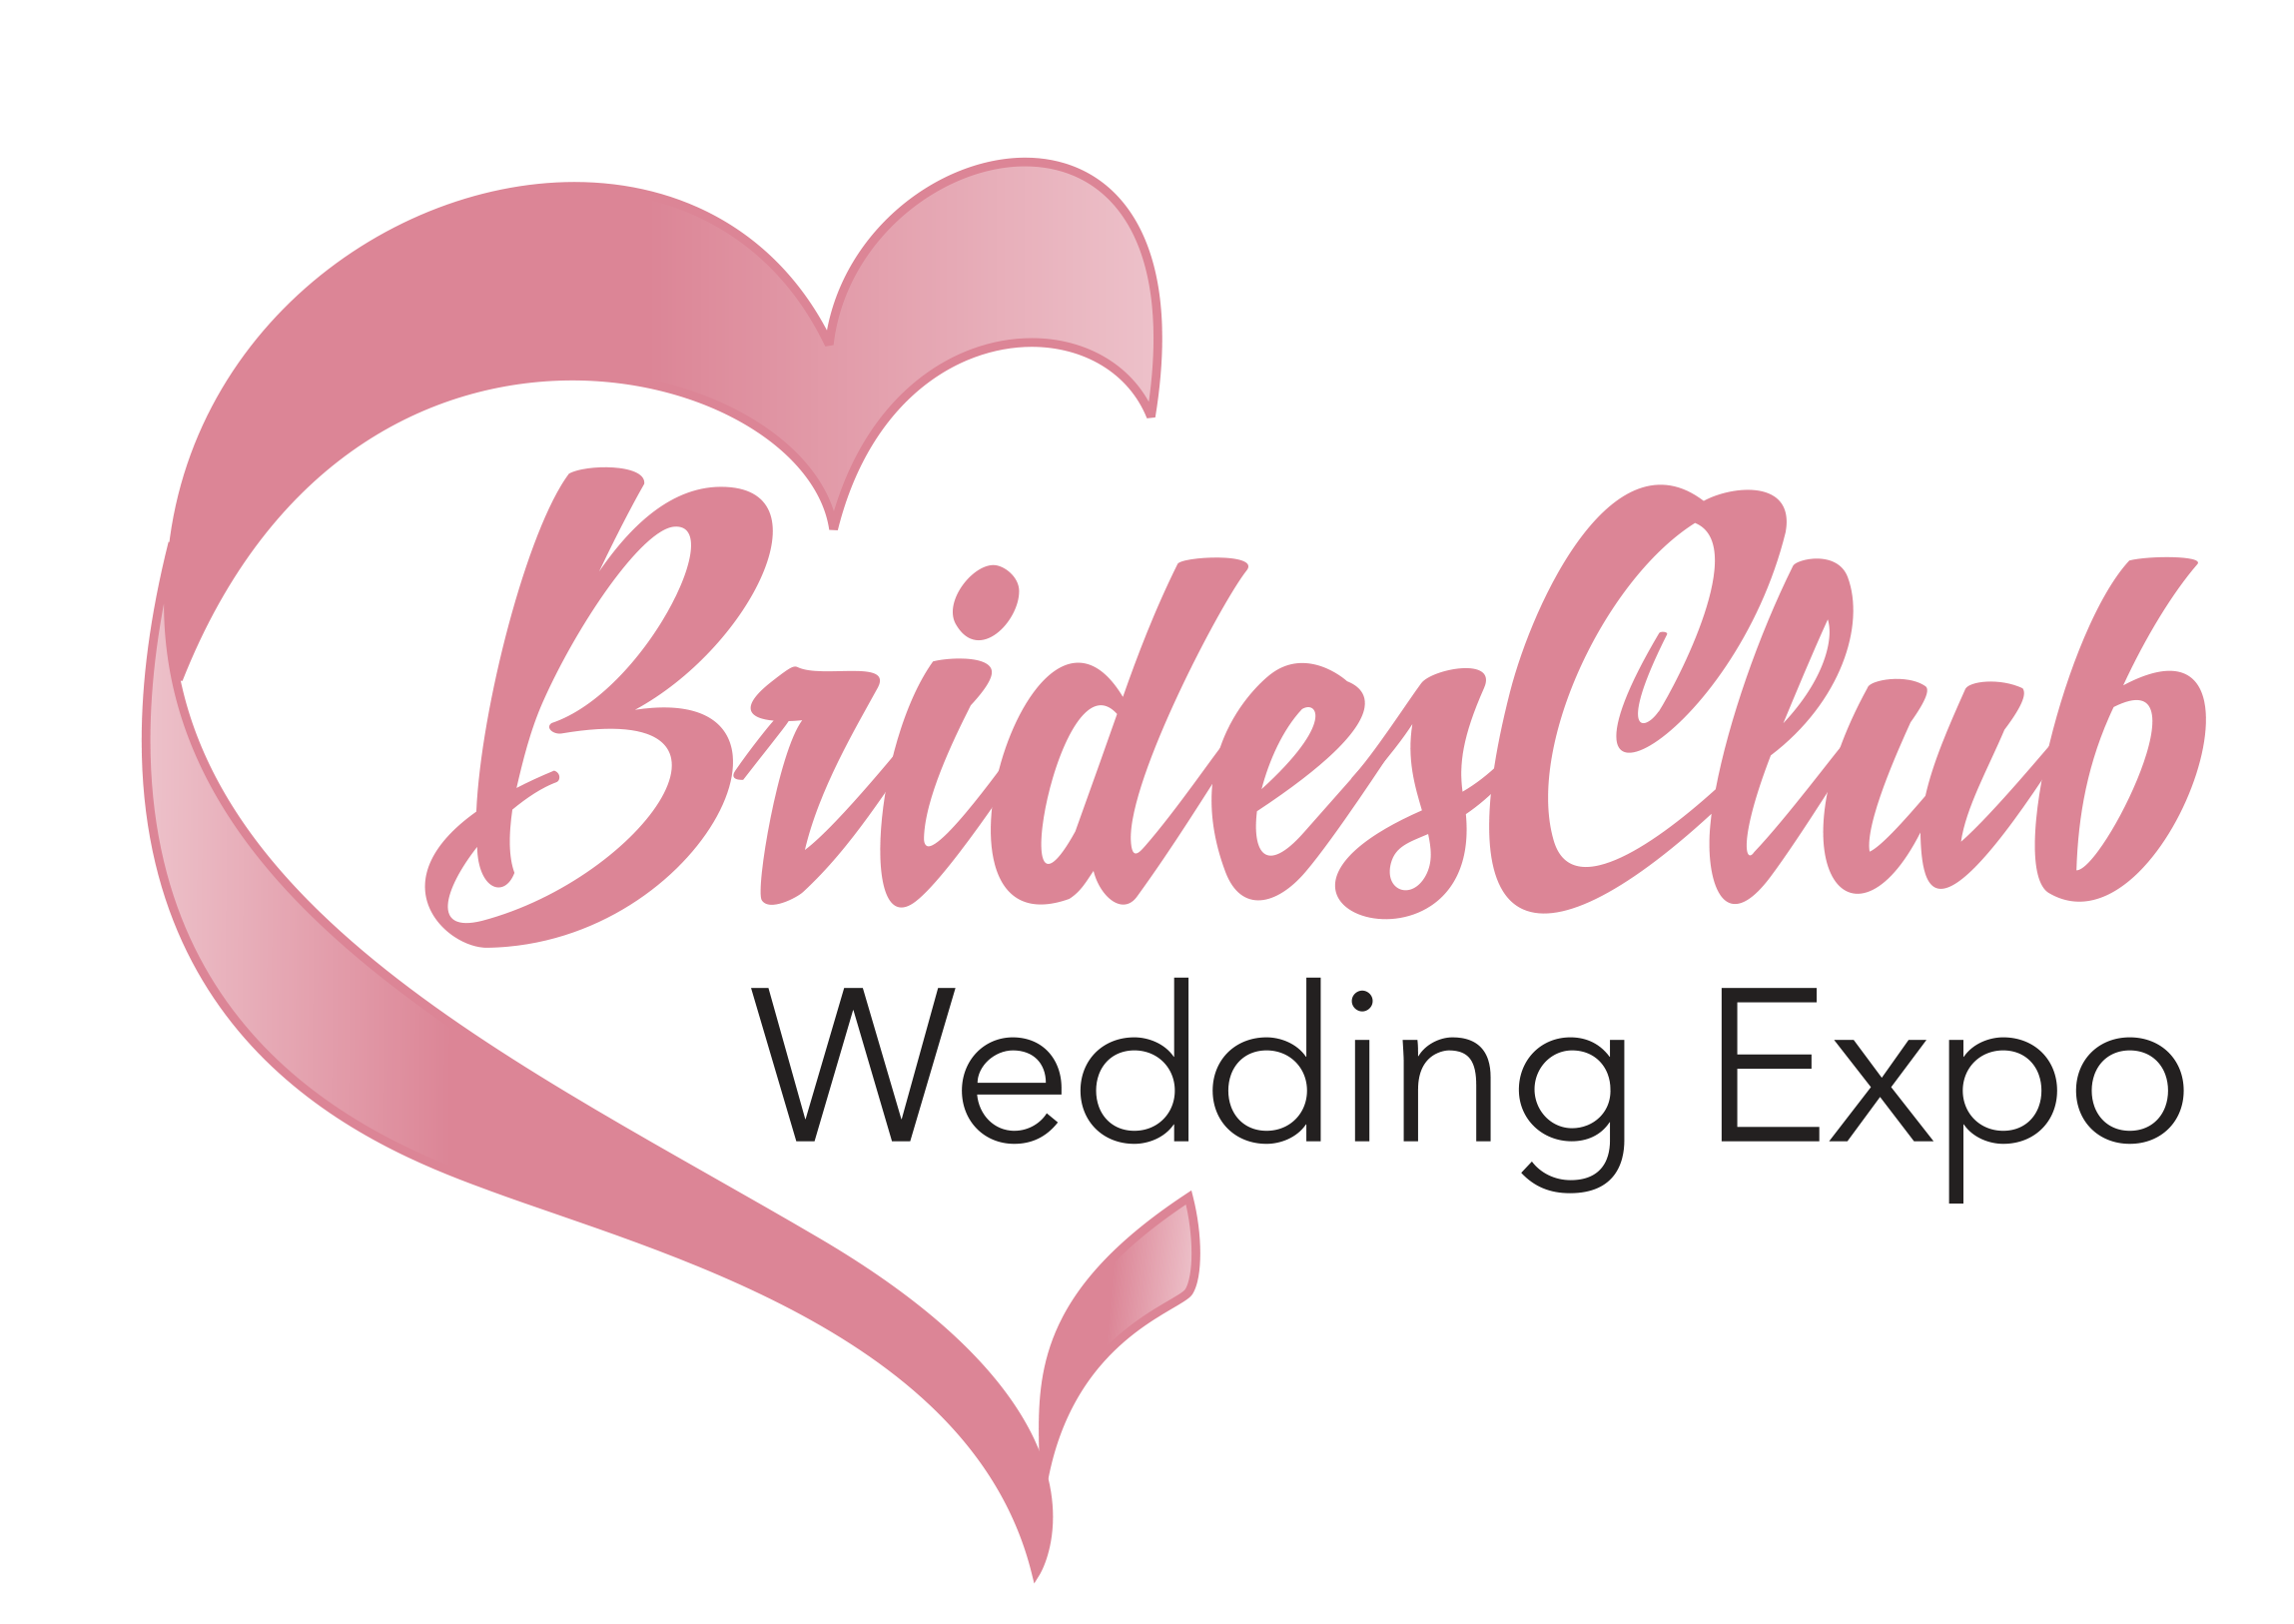 https://steenmanassociates.com/wp-content/uploads/2019/10/BridesClub_WeddingExpo_Logo.png